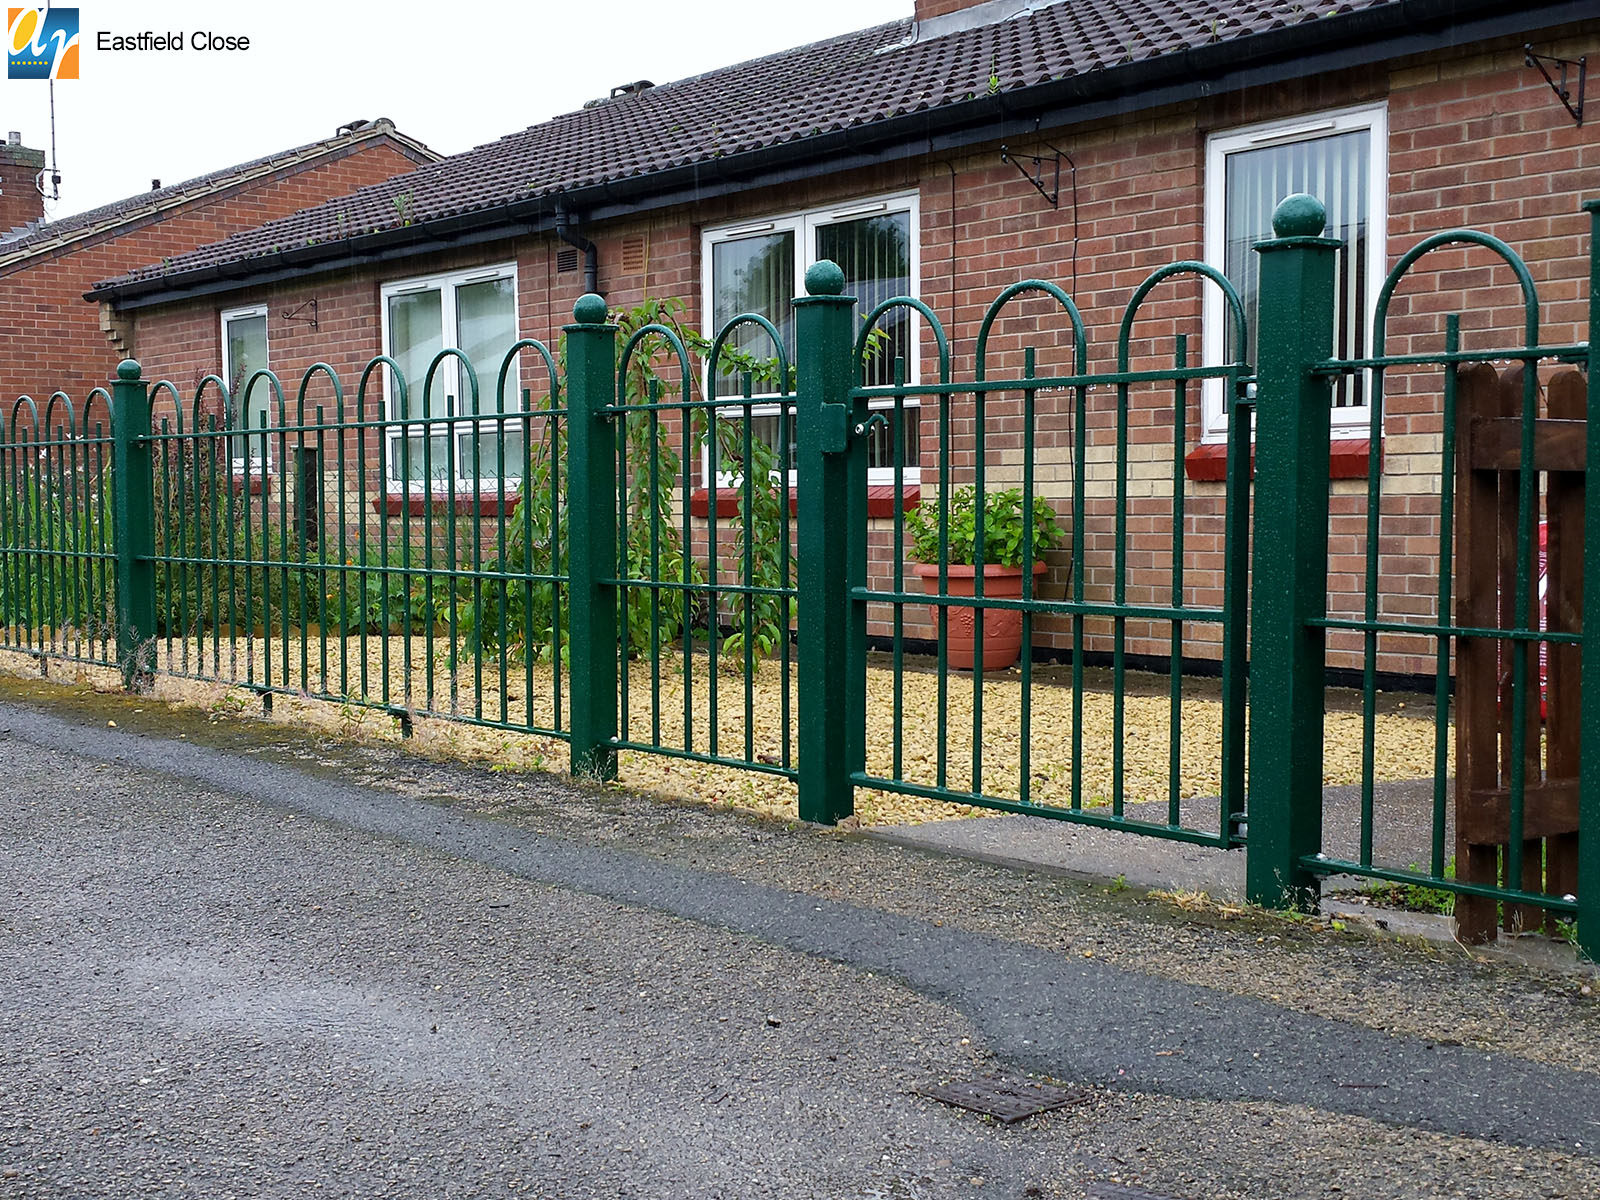 Eastfield Close metal railings and gates